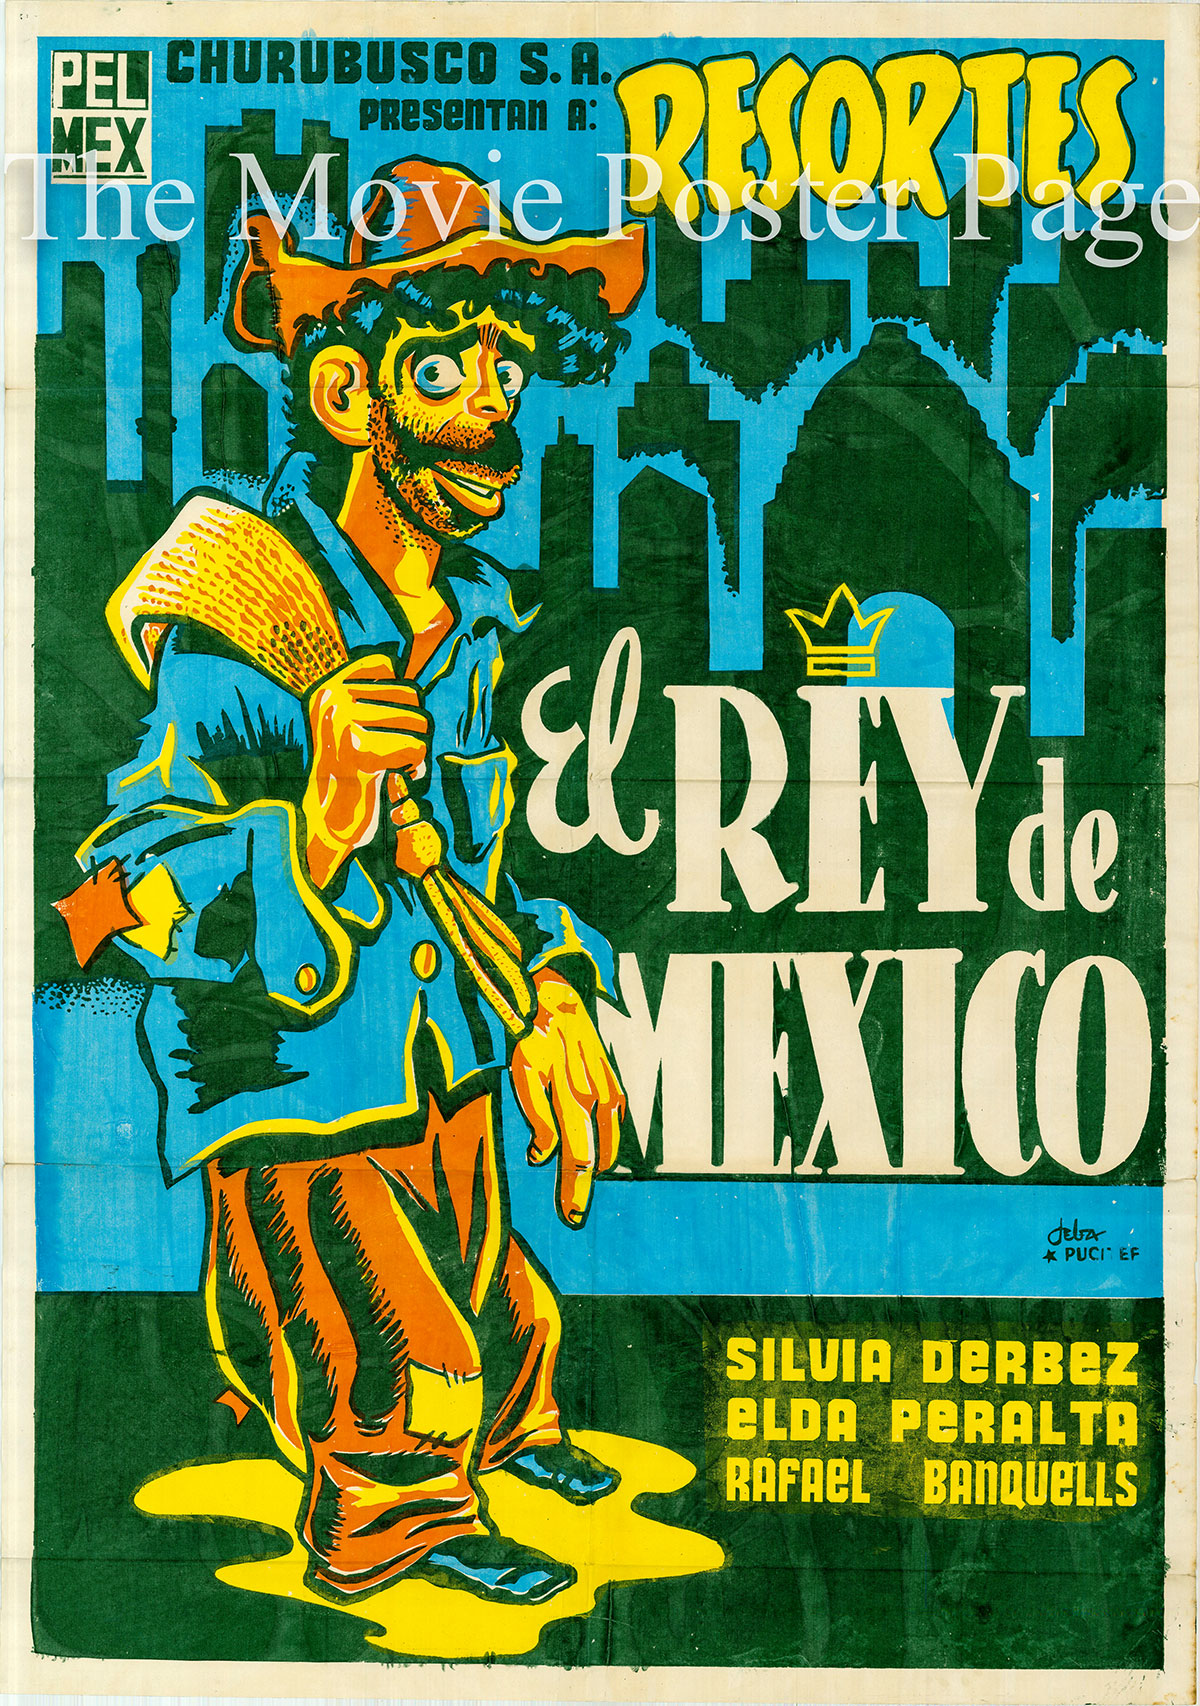 Pictured is a Mexican one-sheet poster designed by Ernesto Garcia Cabral for the 1955 Rafael Baledon film El Rey de Mexico starring Adalberto Martinez.